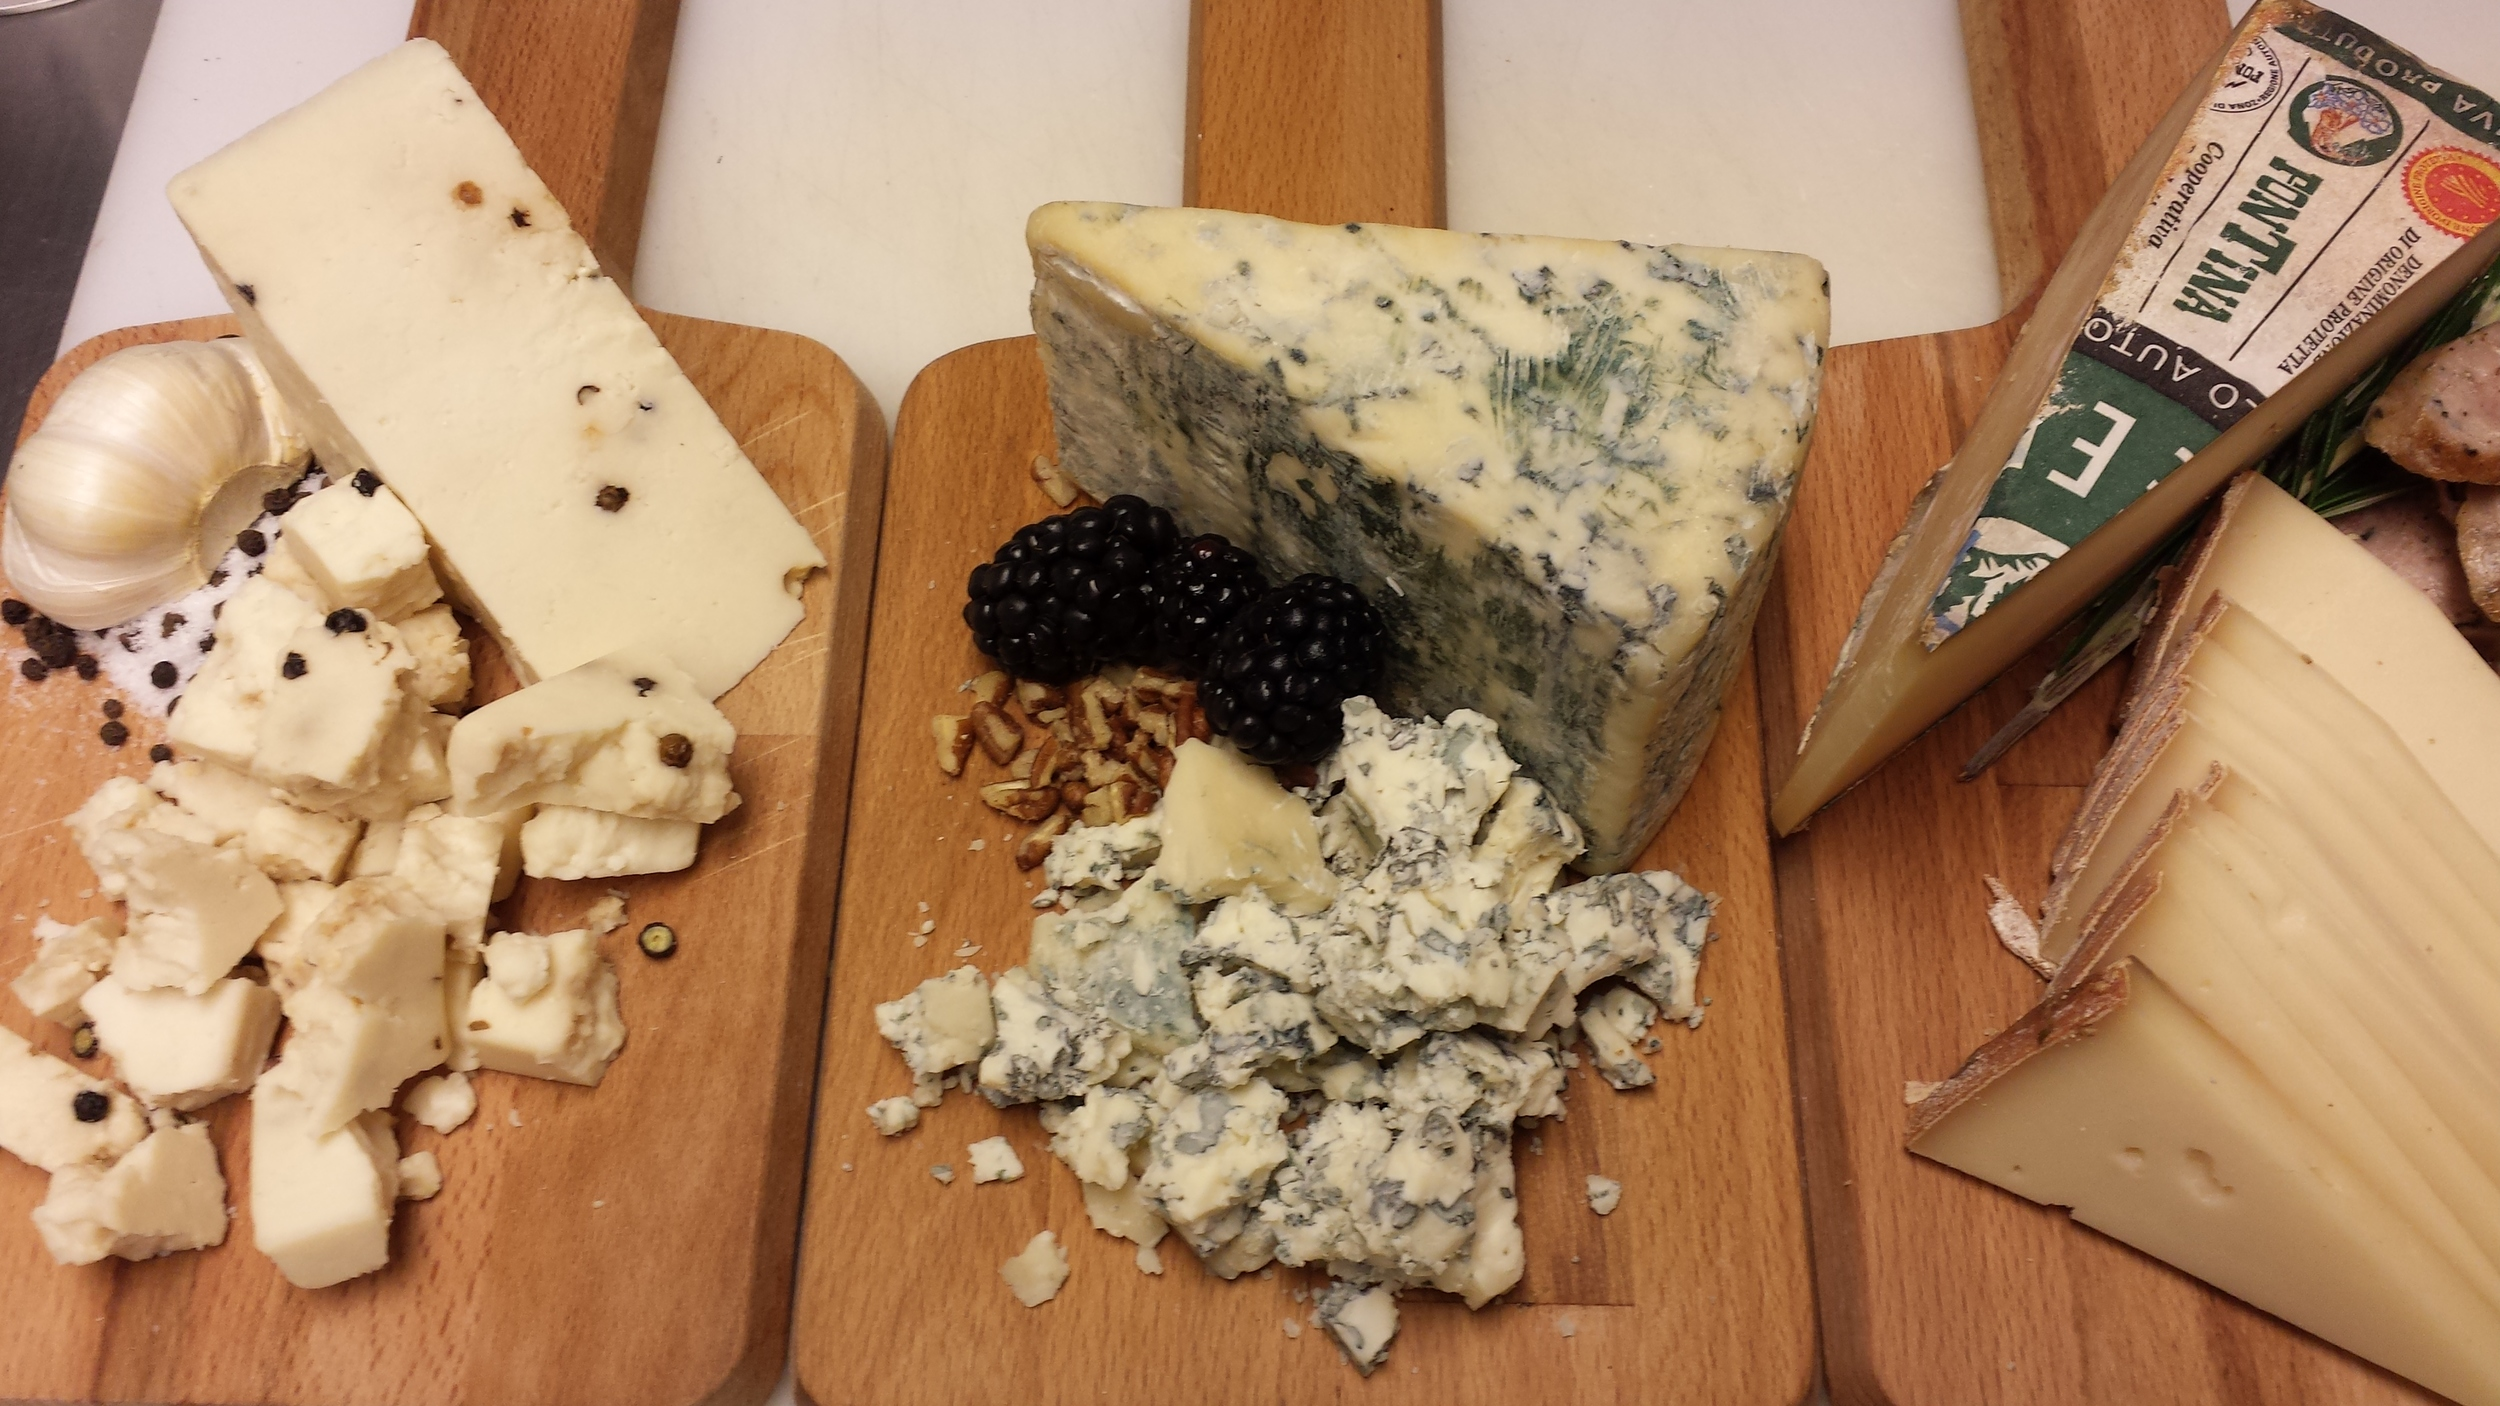 Imported pecorino pepato, gorgonzola dolce, and fontina val d'aosta ready to go for happy hour.